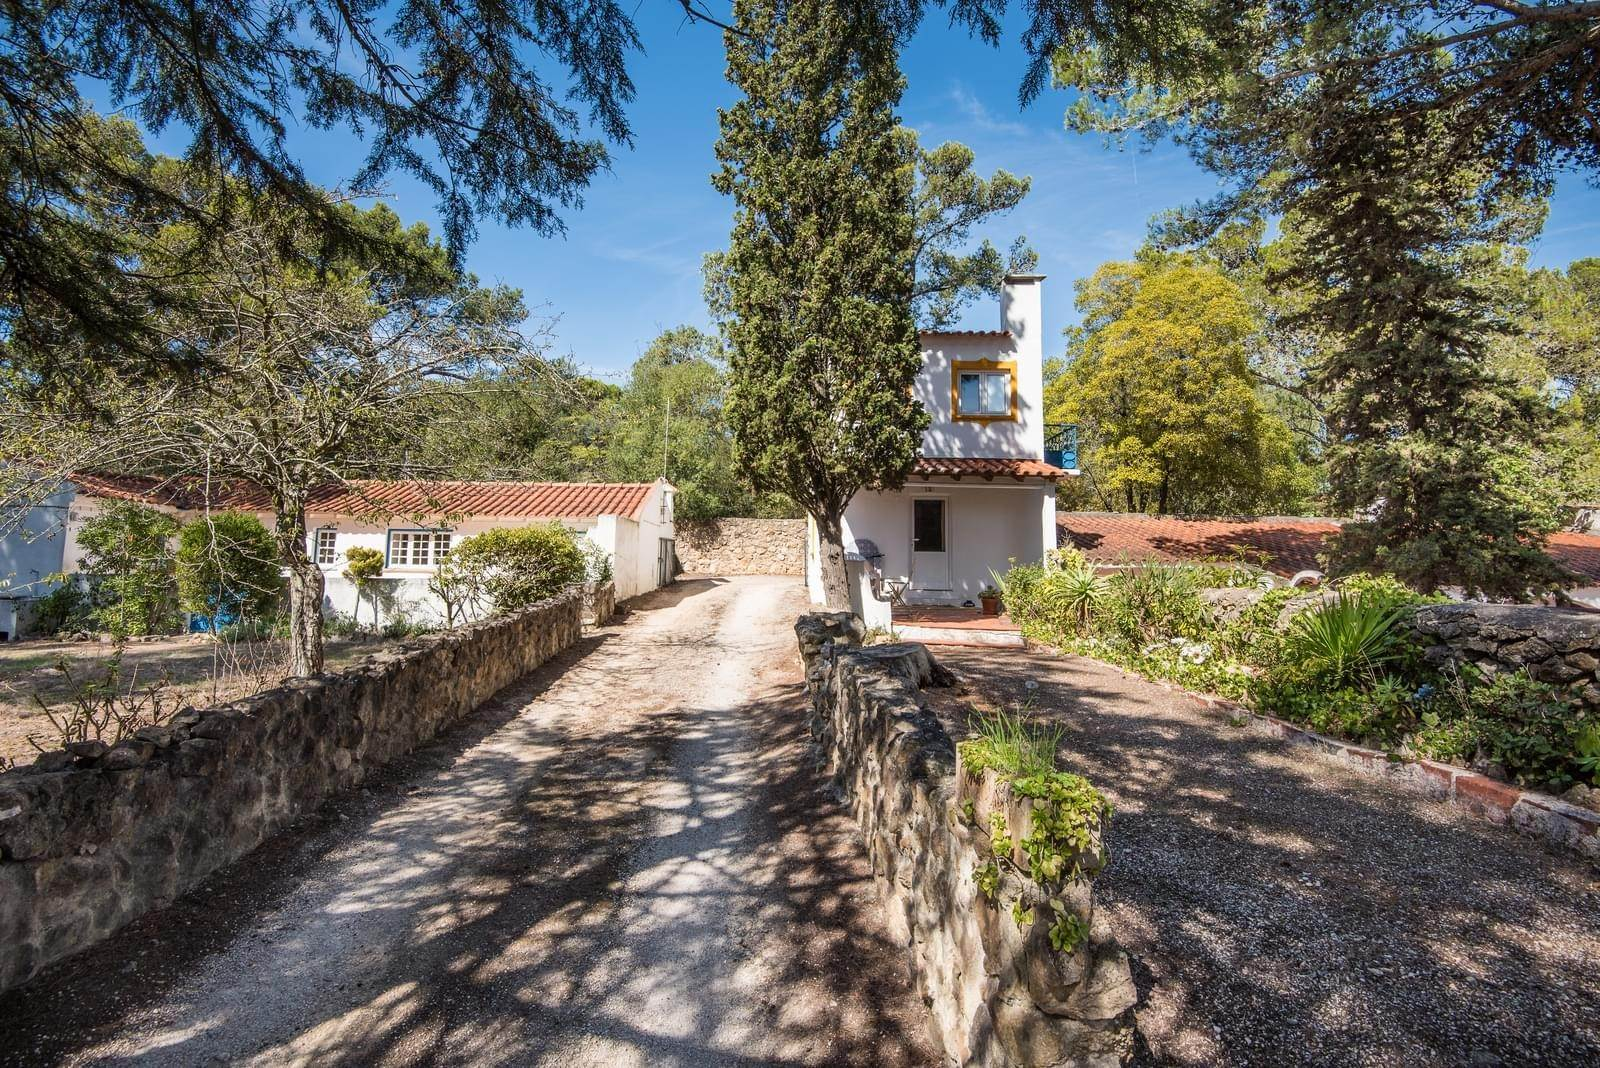 8. 別墅 / 联排别墅 為 出售 在 Unique property, located next to Quinta da Marinha, a quiet area.The property comprises six small villas, with deep refu... Cascais, 葡萄牙